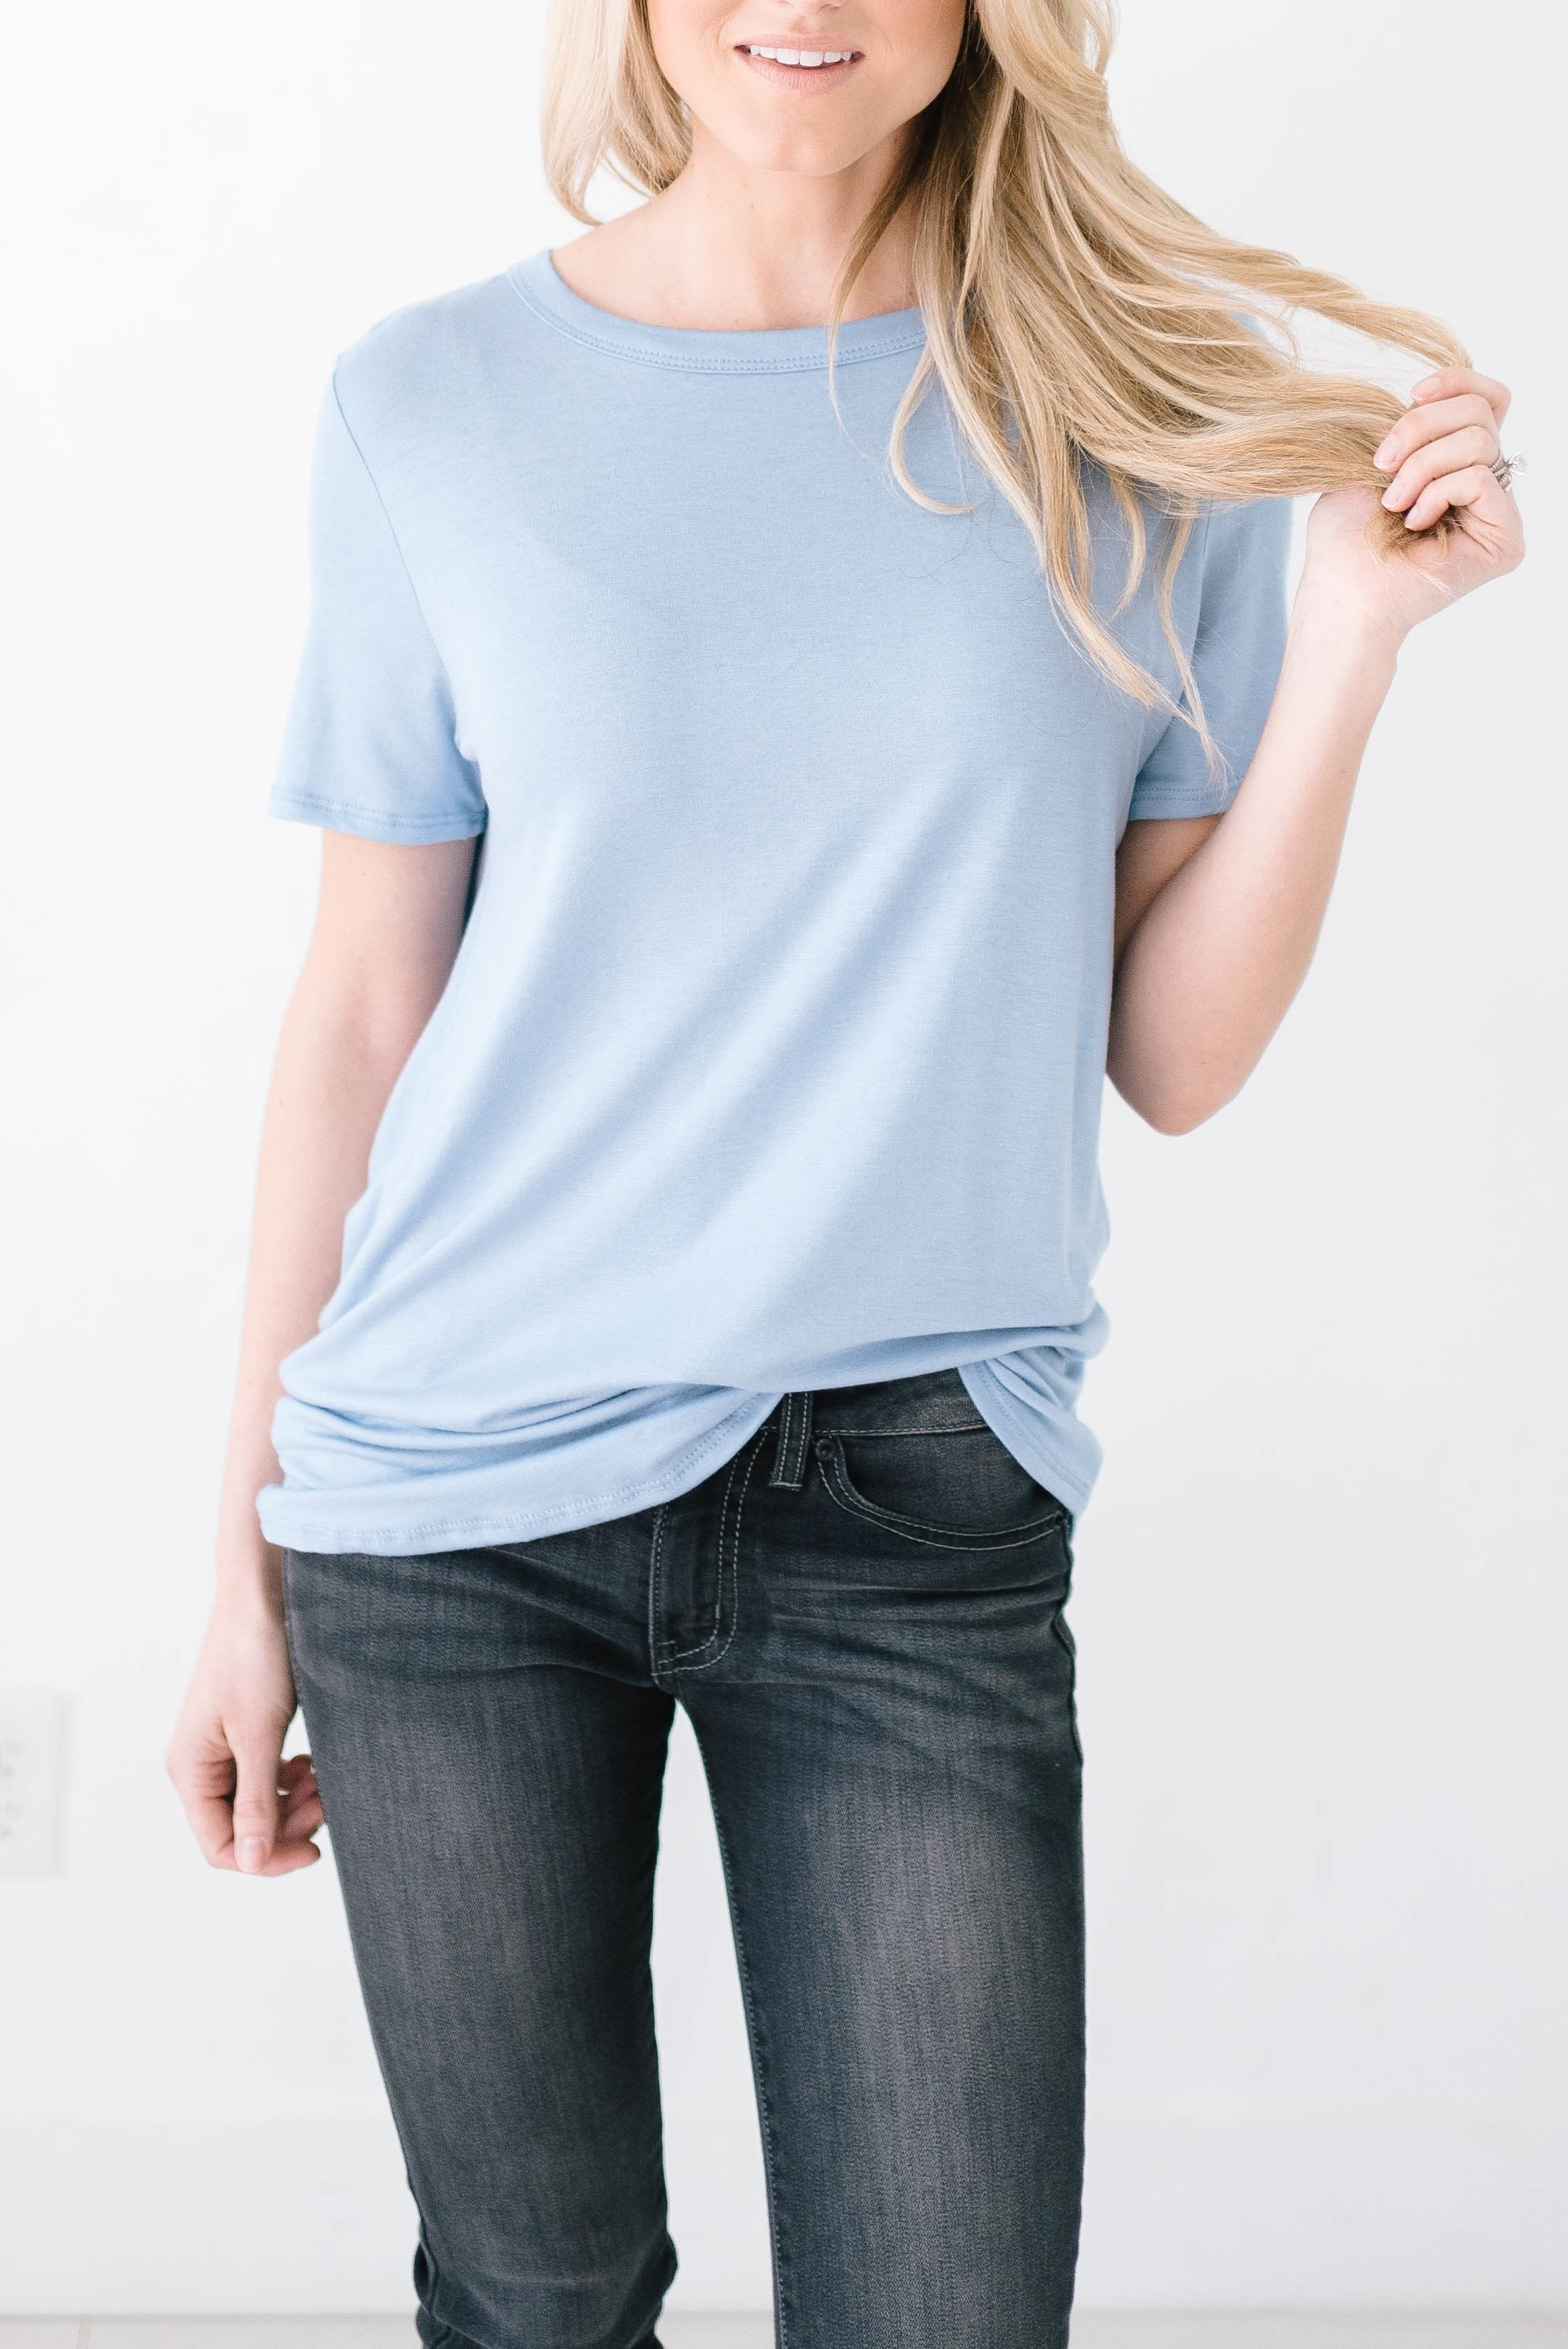 Wild & Free Tee In Denim